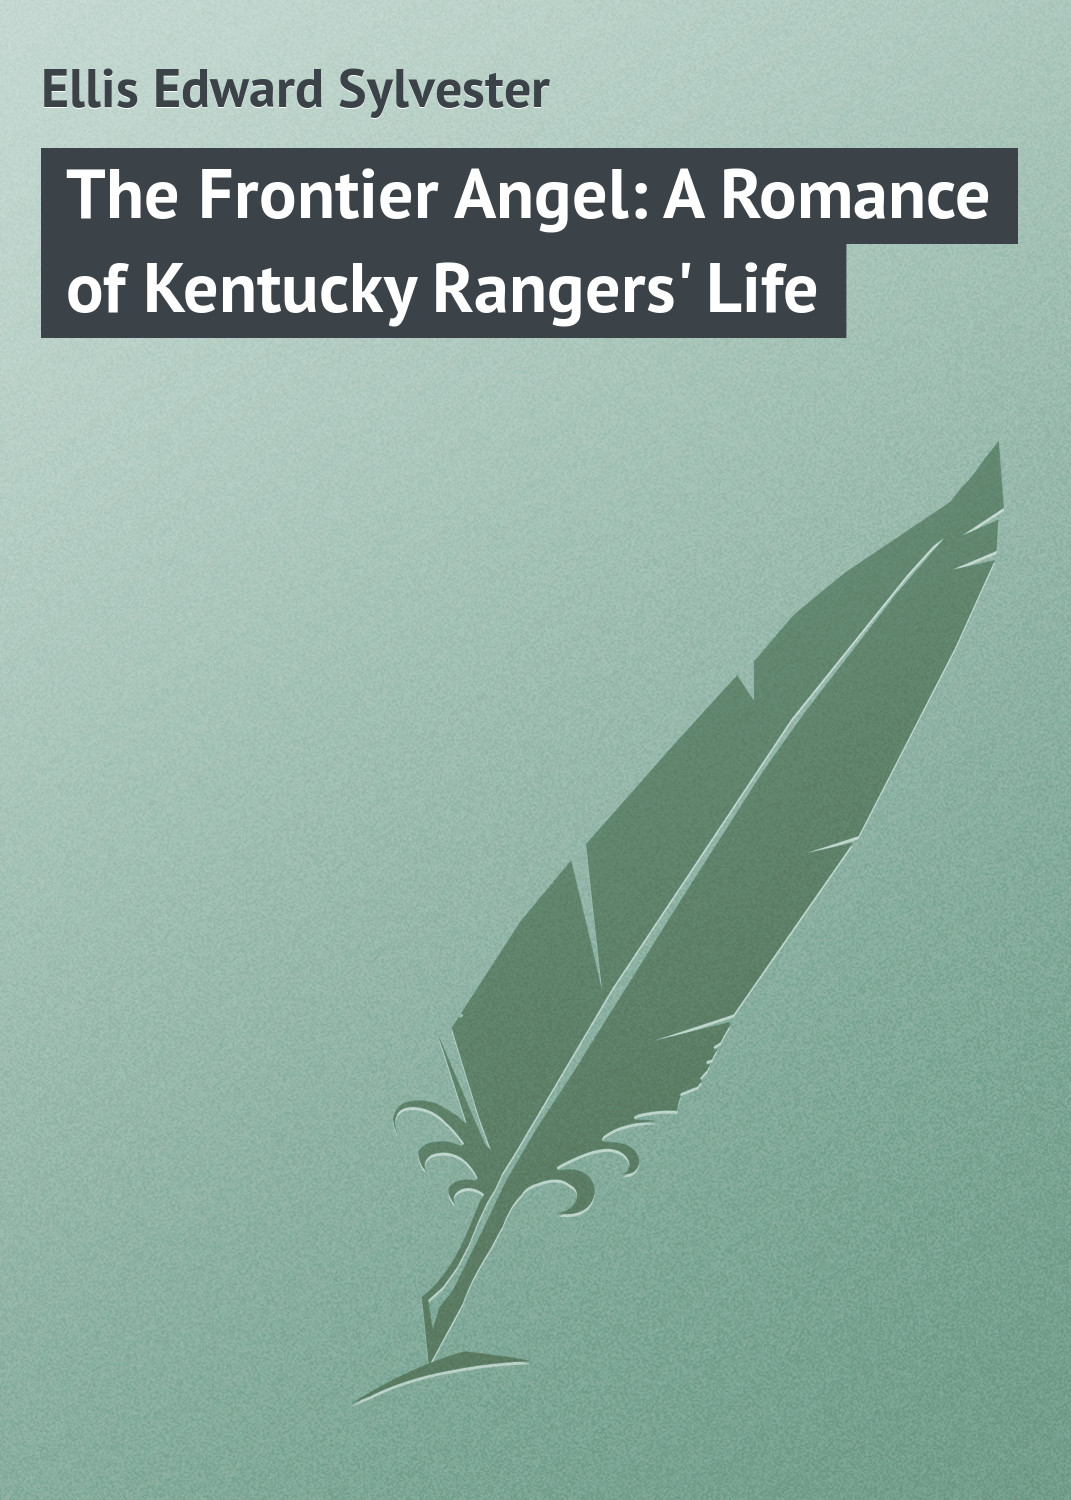 Ellis Edward Sylvester The Frontier Angel: A Romance of Kentucky Rangers' Life ellis edward sylvester the life and times of col daniel boone hunter soldier and pioneer